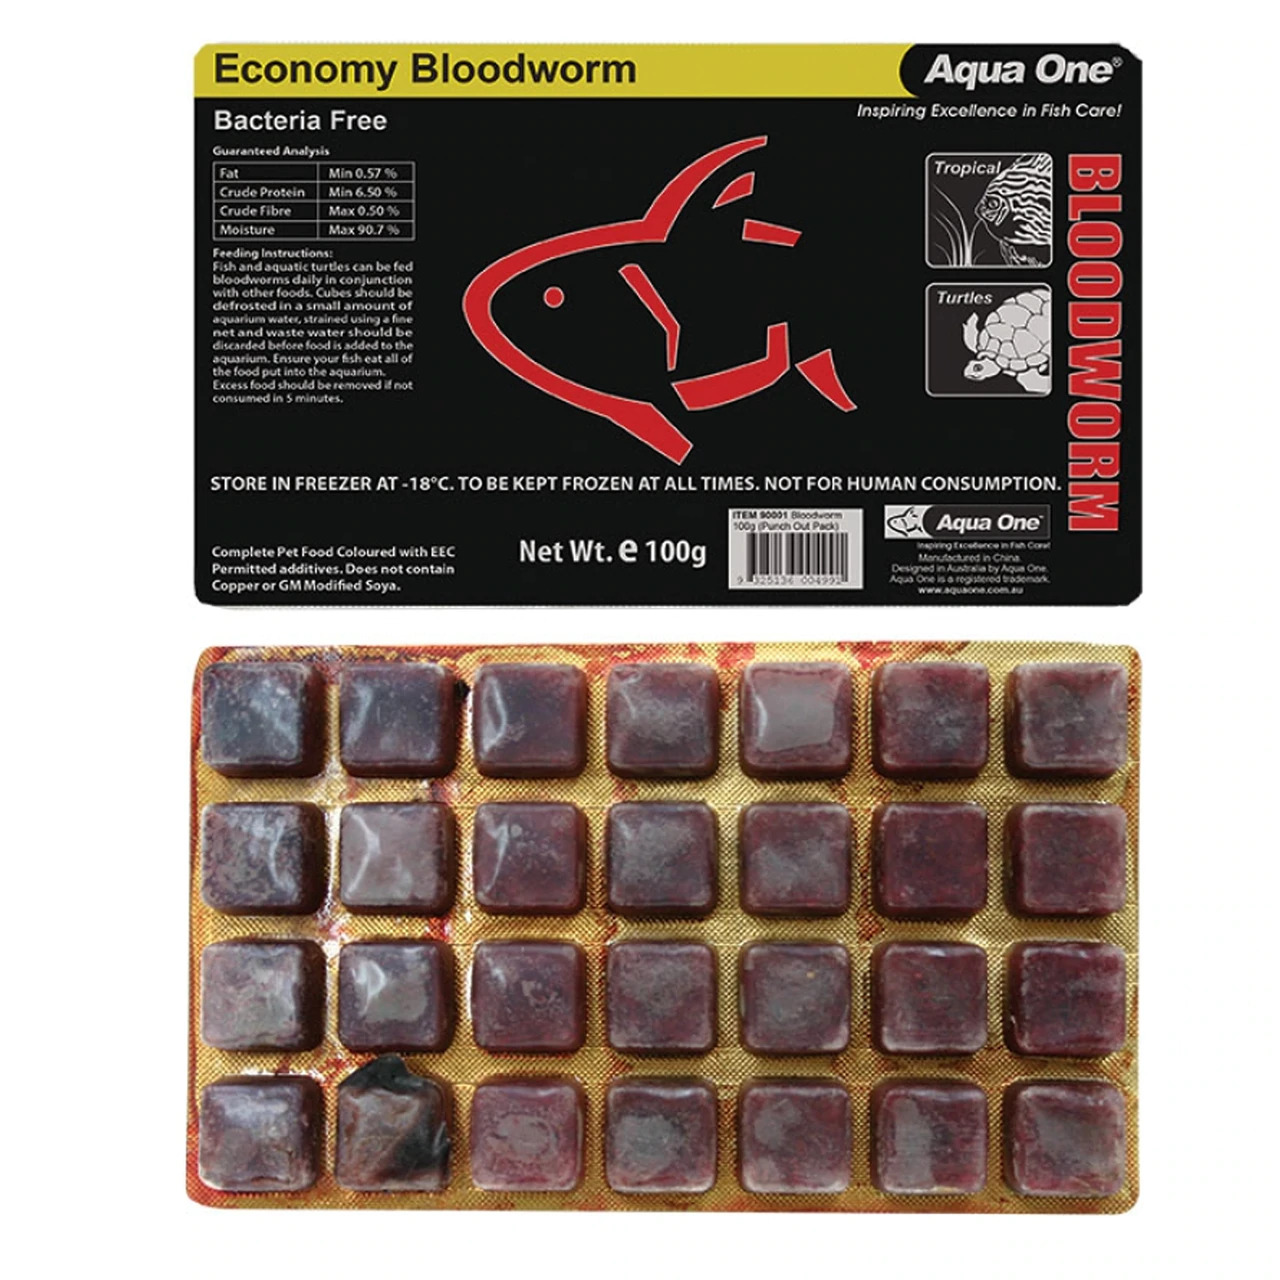 Aqua One Frozen Bloodworm in Blister Pack 100g